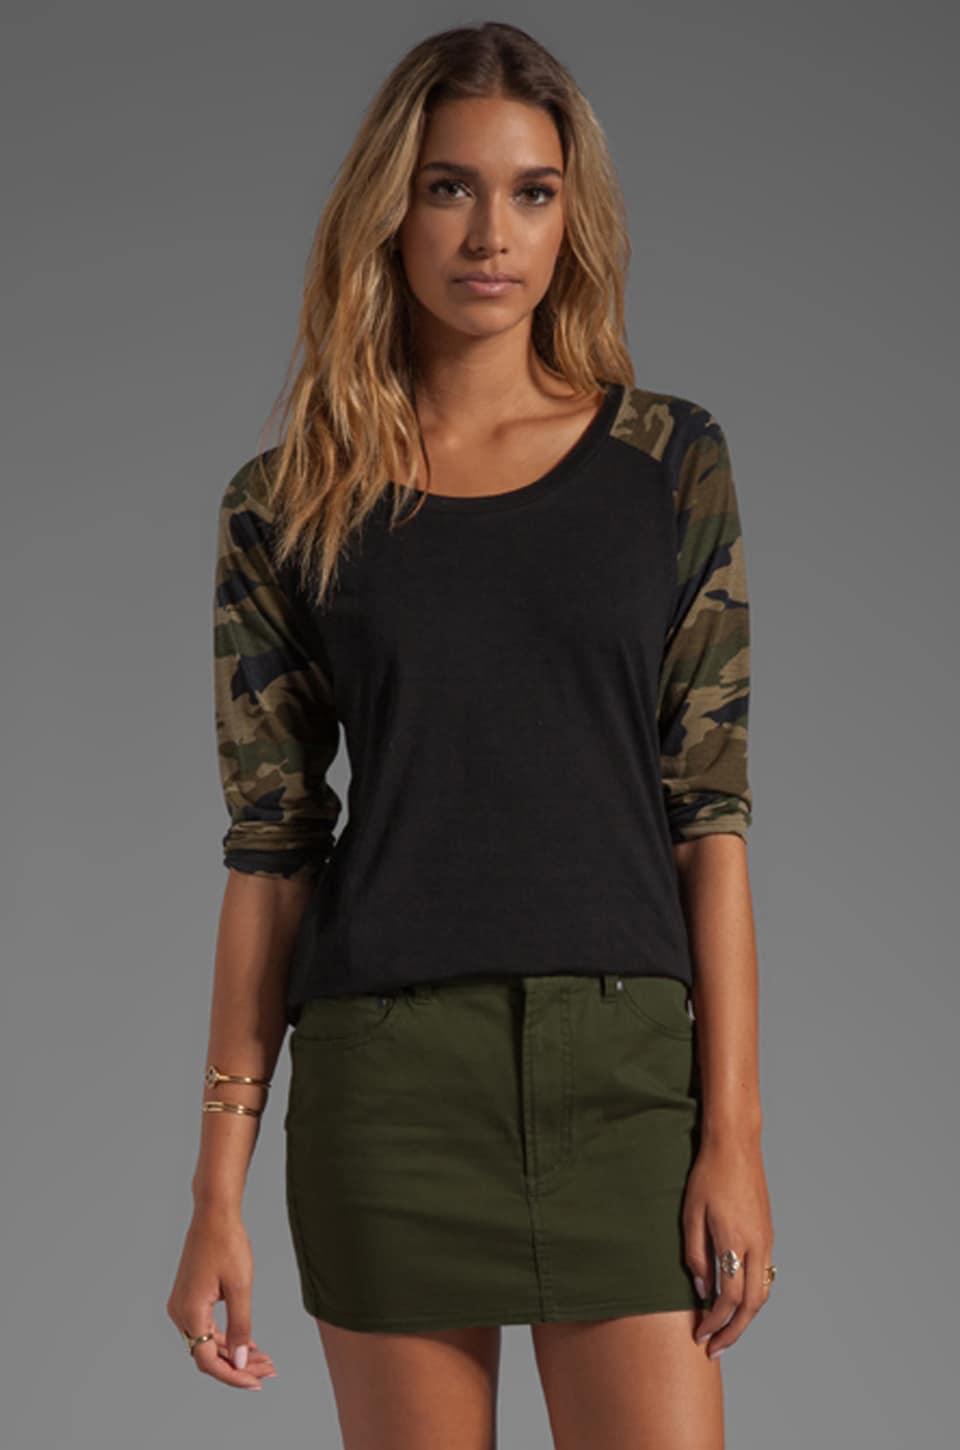 Lovers + Friends For REVOLVE Baseball Tee in Black/Camo